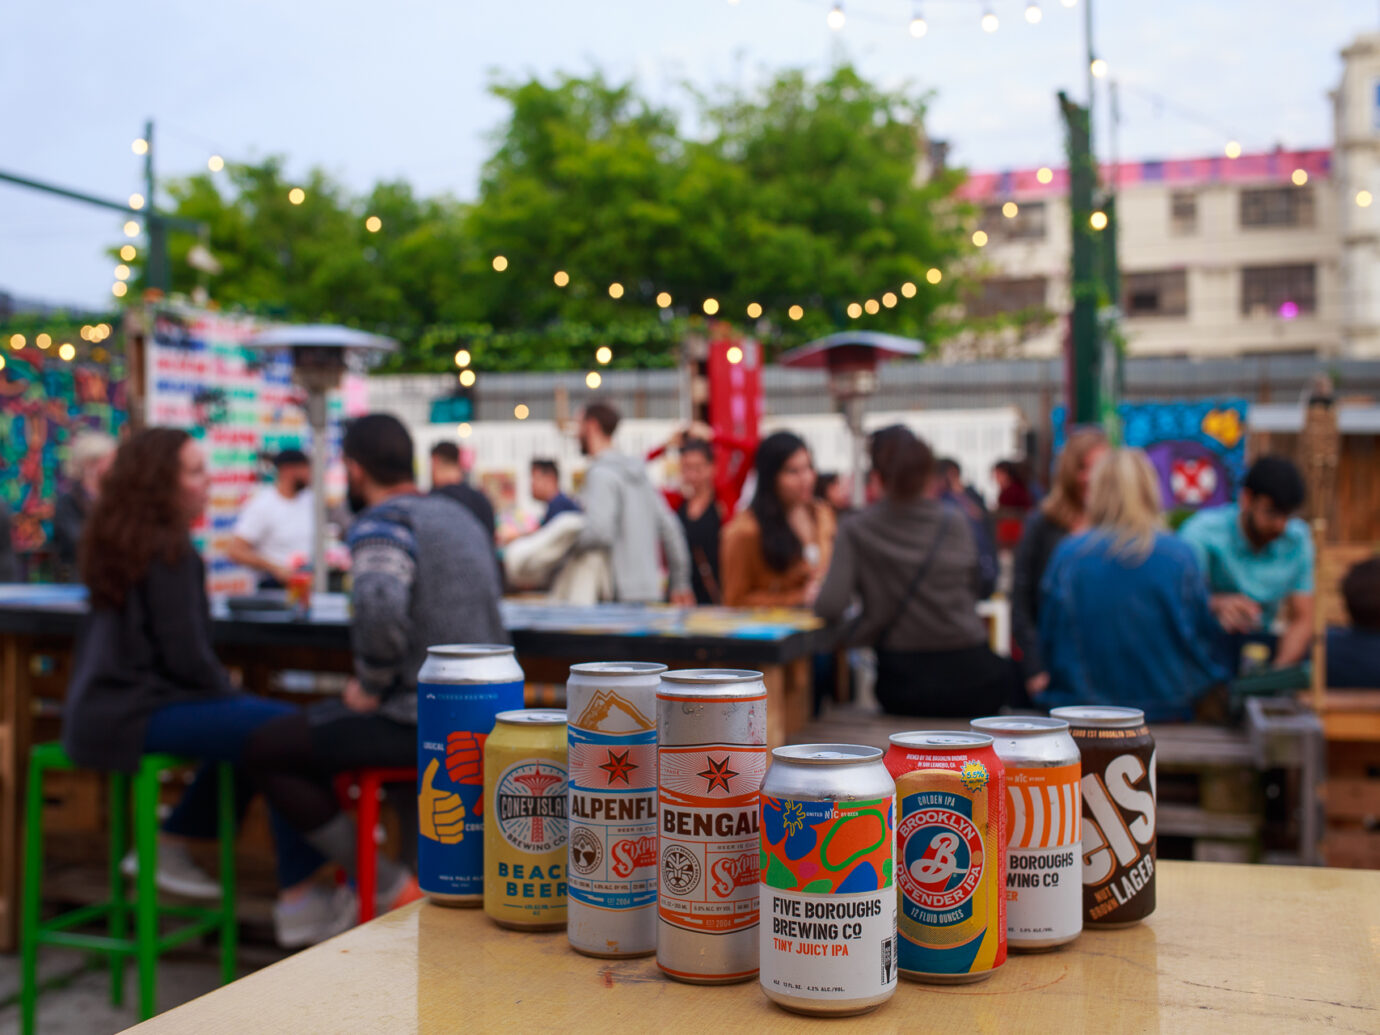 Brooklyn Beer Garden in Bushwick